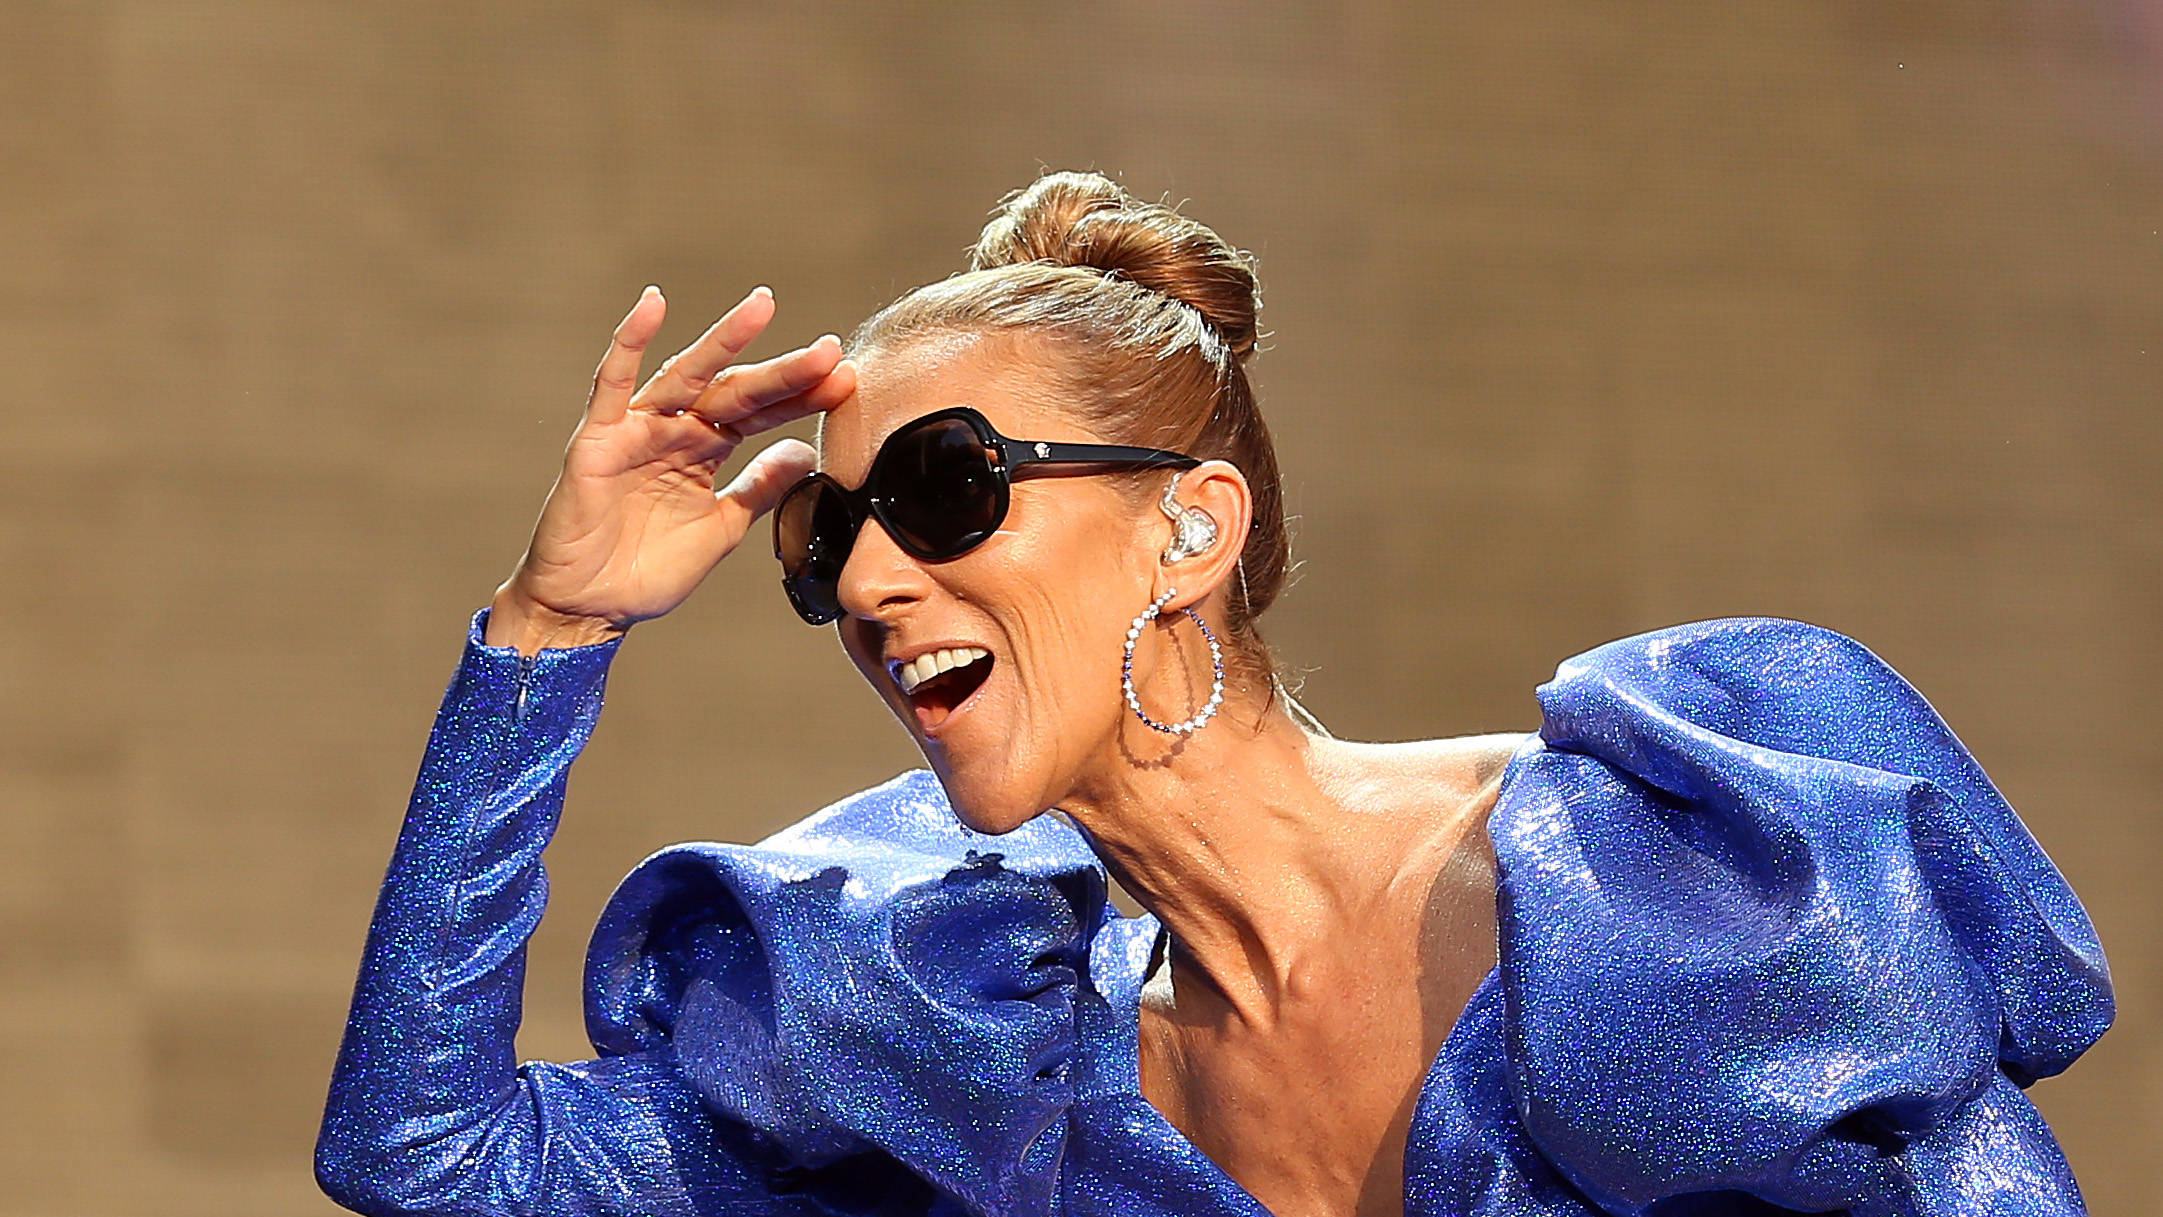 4Pm Bst celine dion wows at british summer time hyde park: what was